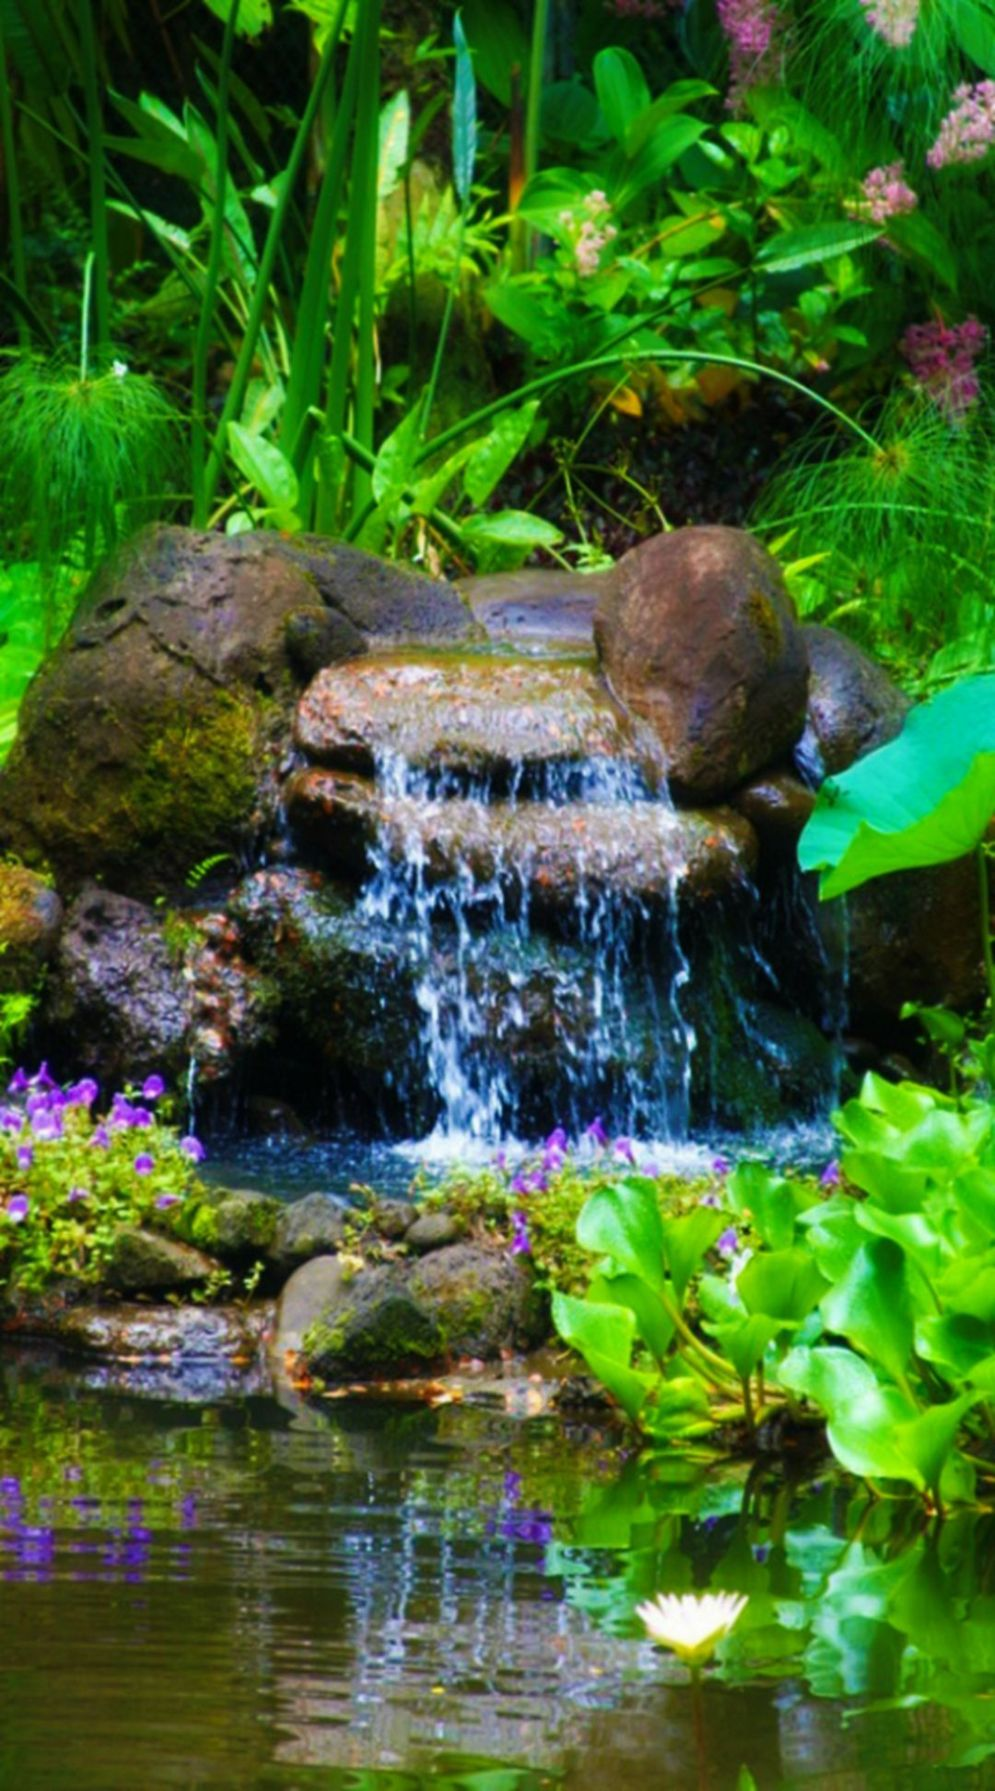 Water garden ideas for more natural backyard feeling with beautiful aquatic plants and ponds Image 35